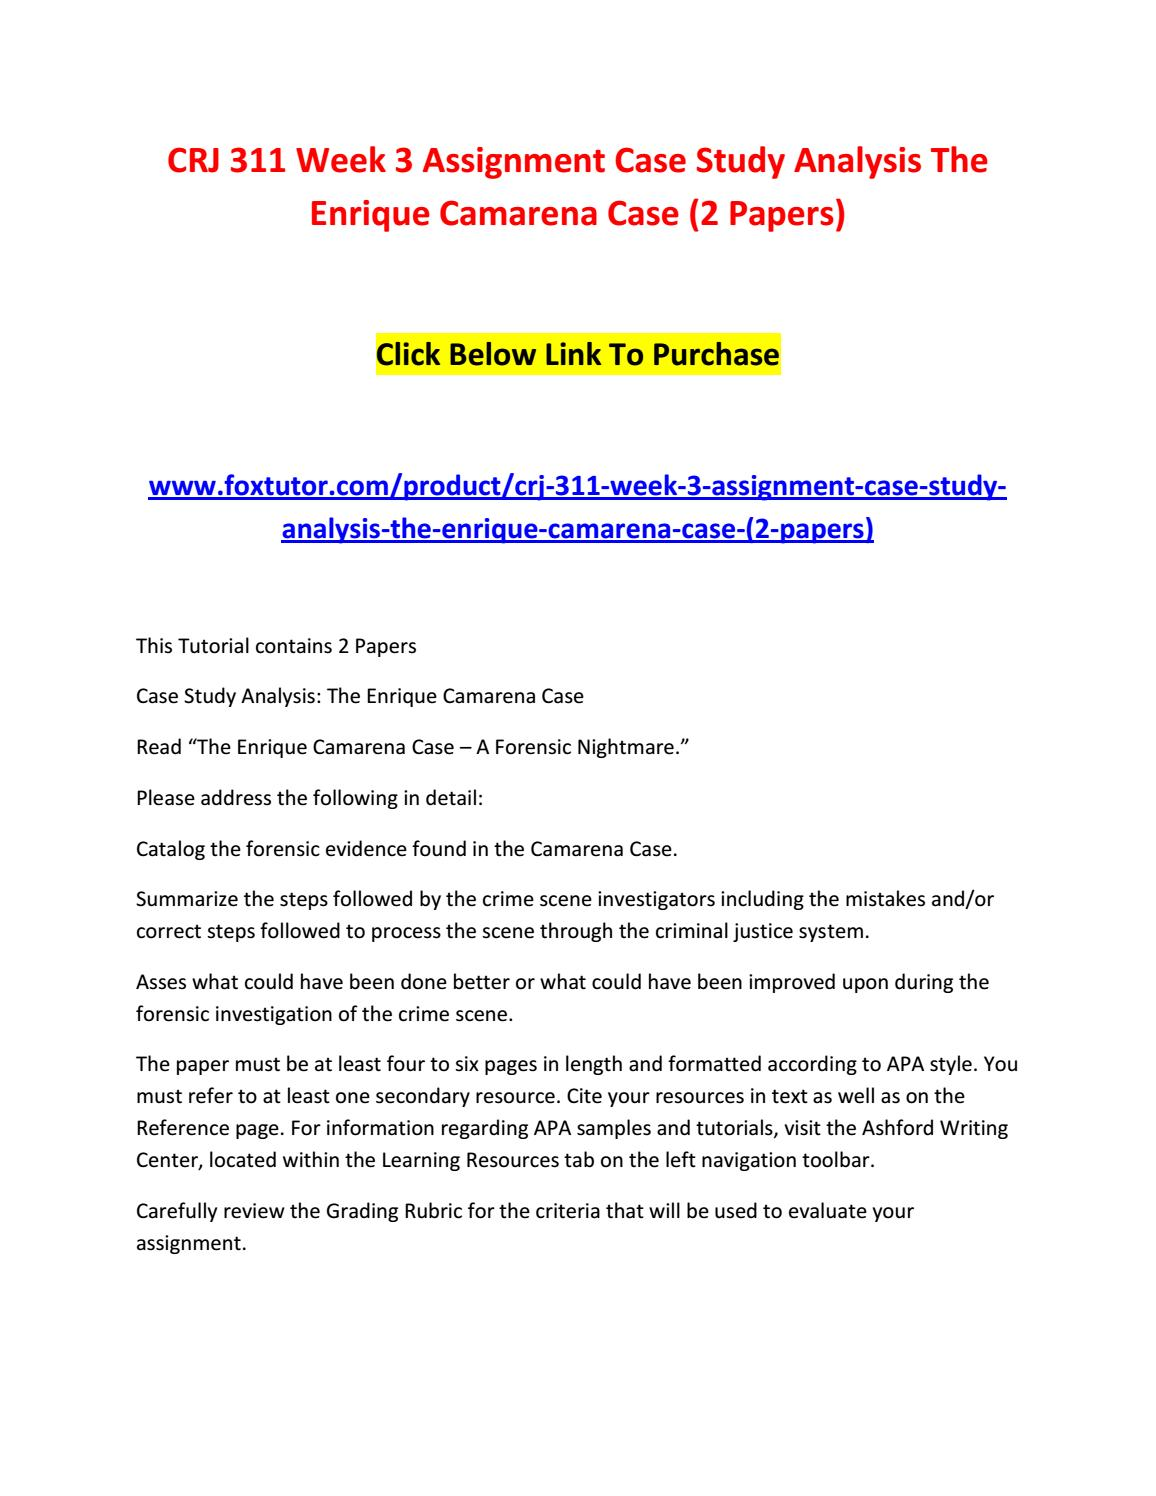 the enrique camarena case a forensic nightmare This tutorial contains 2 papers case study analysis: the enrique camarena case read the enrique camarena case - a forensic nightmare please address the following in detail: catalog the forensic evidence found in the camarena case.